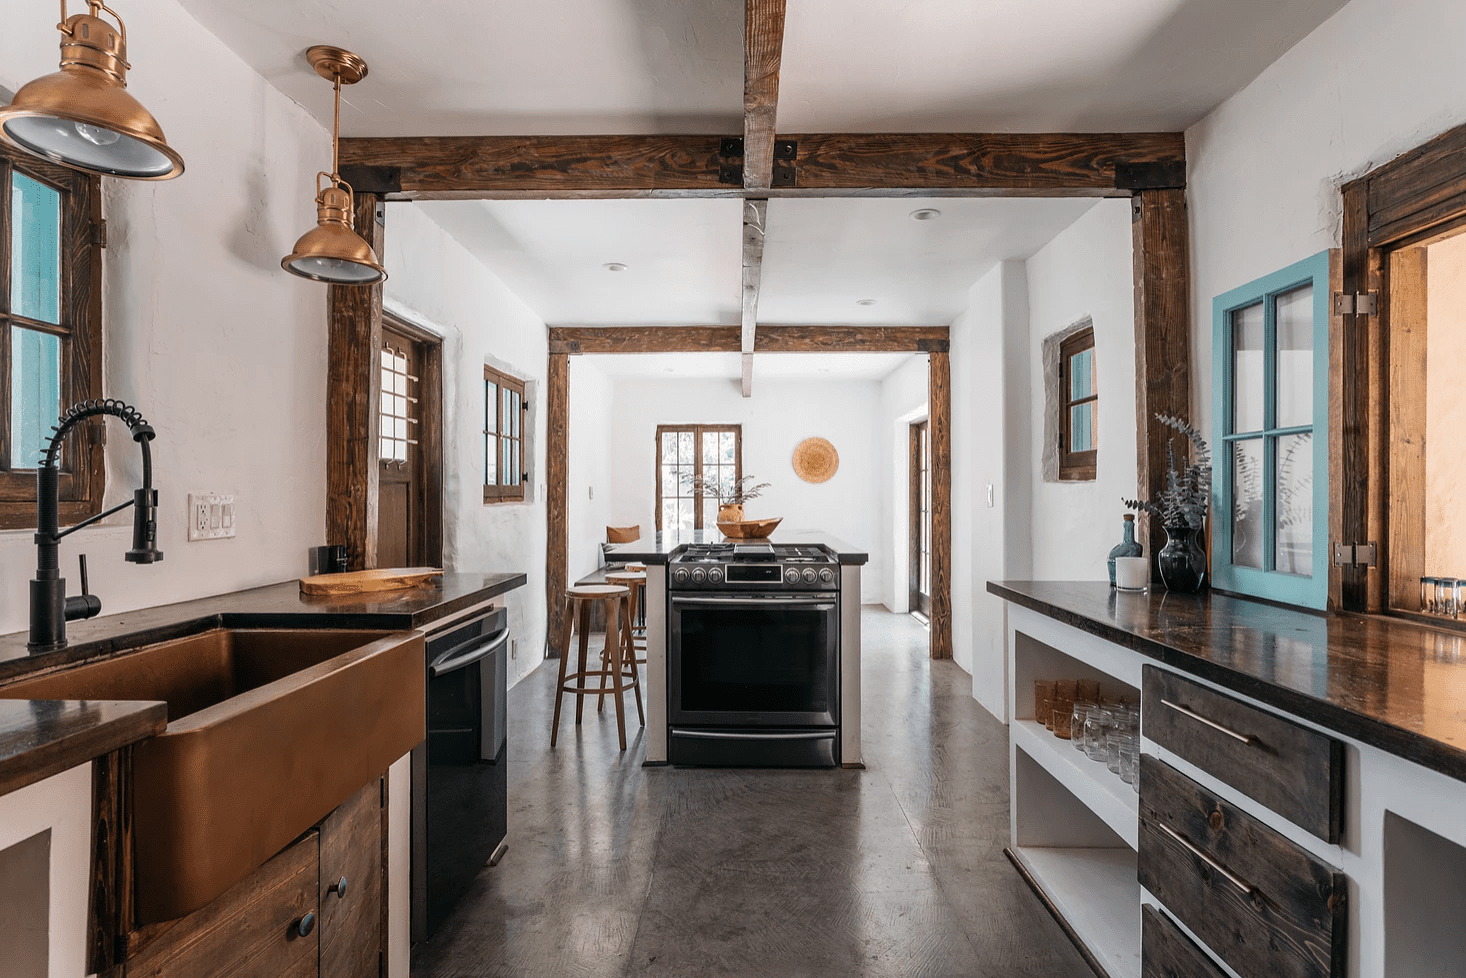 A kitchen with exposed wood beams lining the ceiling